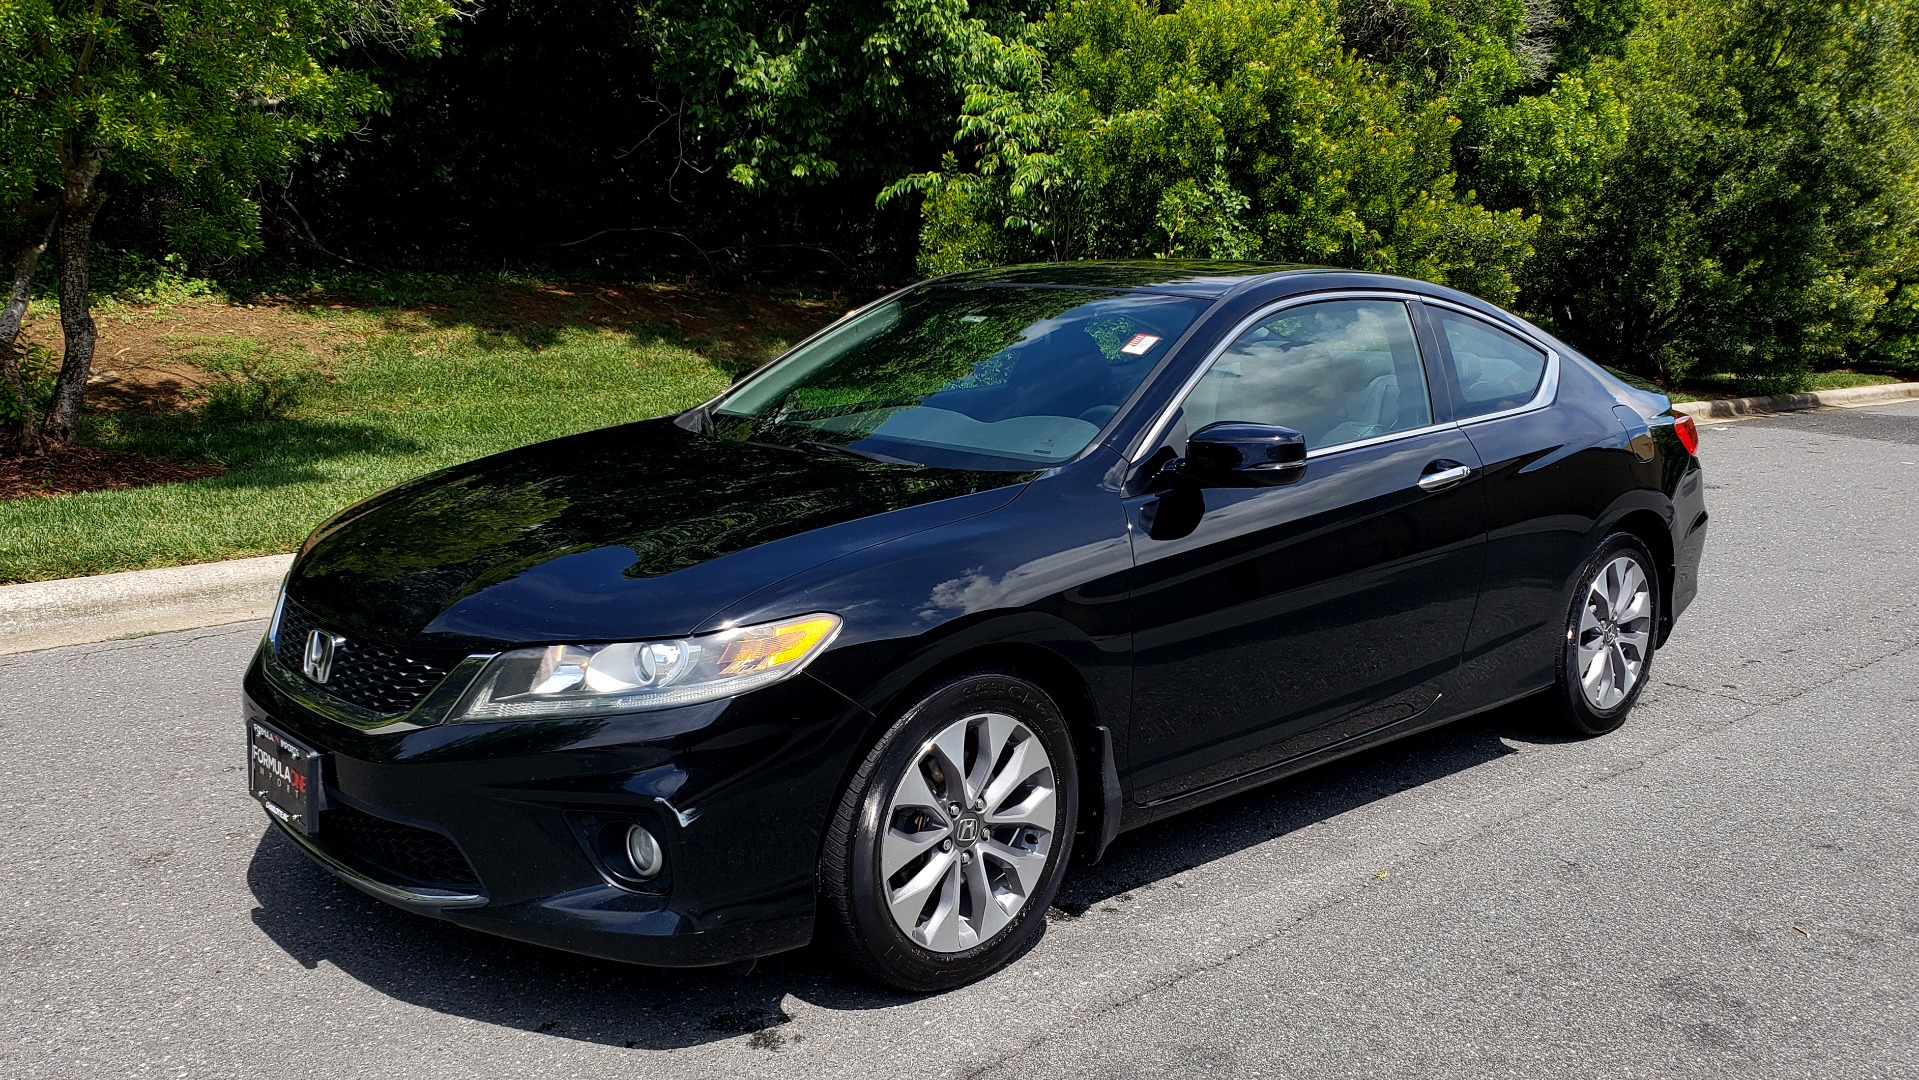 Used 2014 Honda ACCORD COUPE EX-L / 4-CYL / AUTO / SUNROOF / LEATHER / HEATED SEATS for sale Sold at Formula Imports in Charlotte NC 28227 1